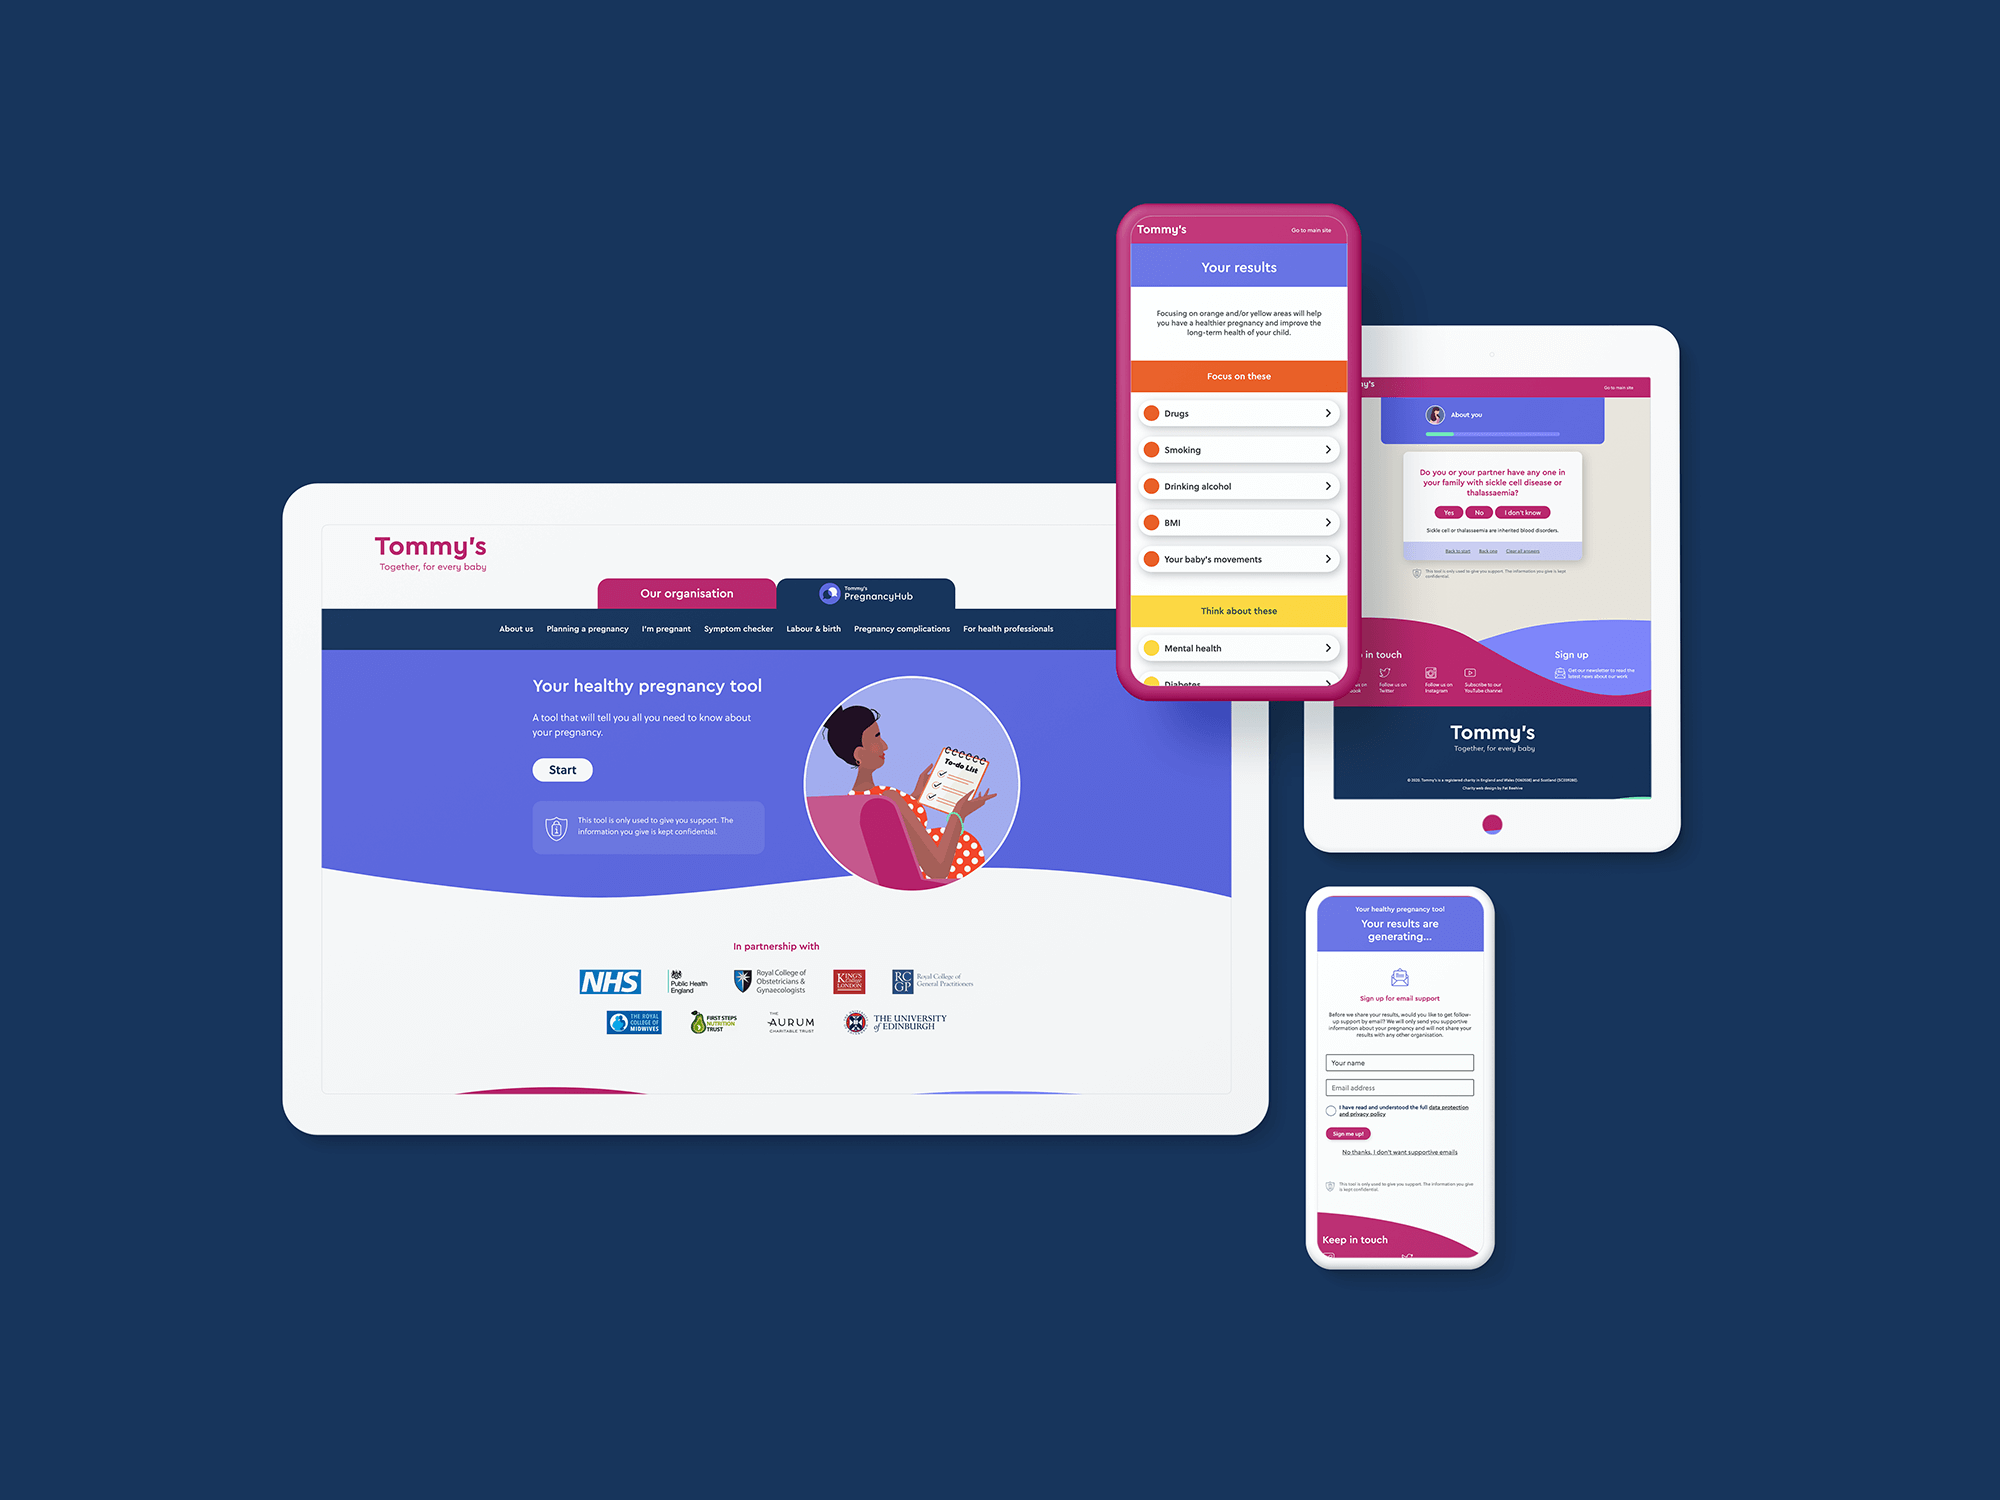 Tommy's safer pregnancy web app shown on various devices